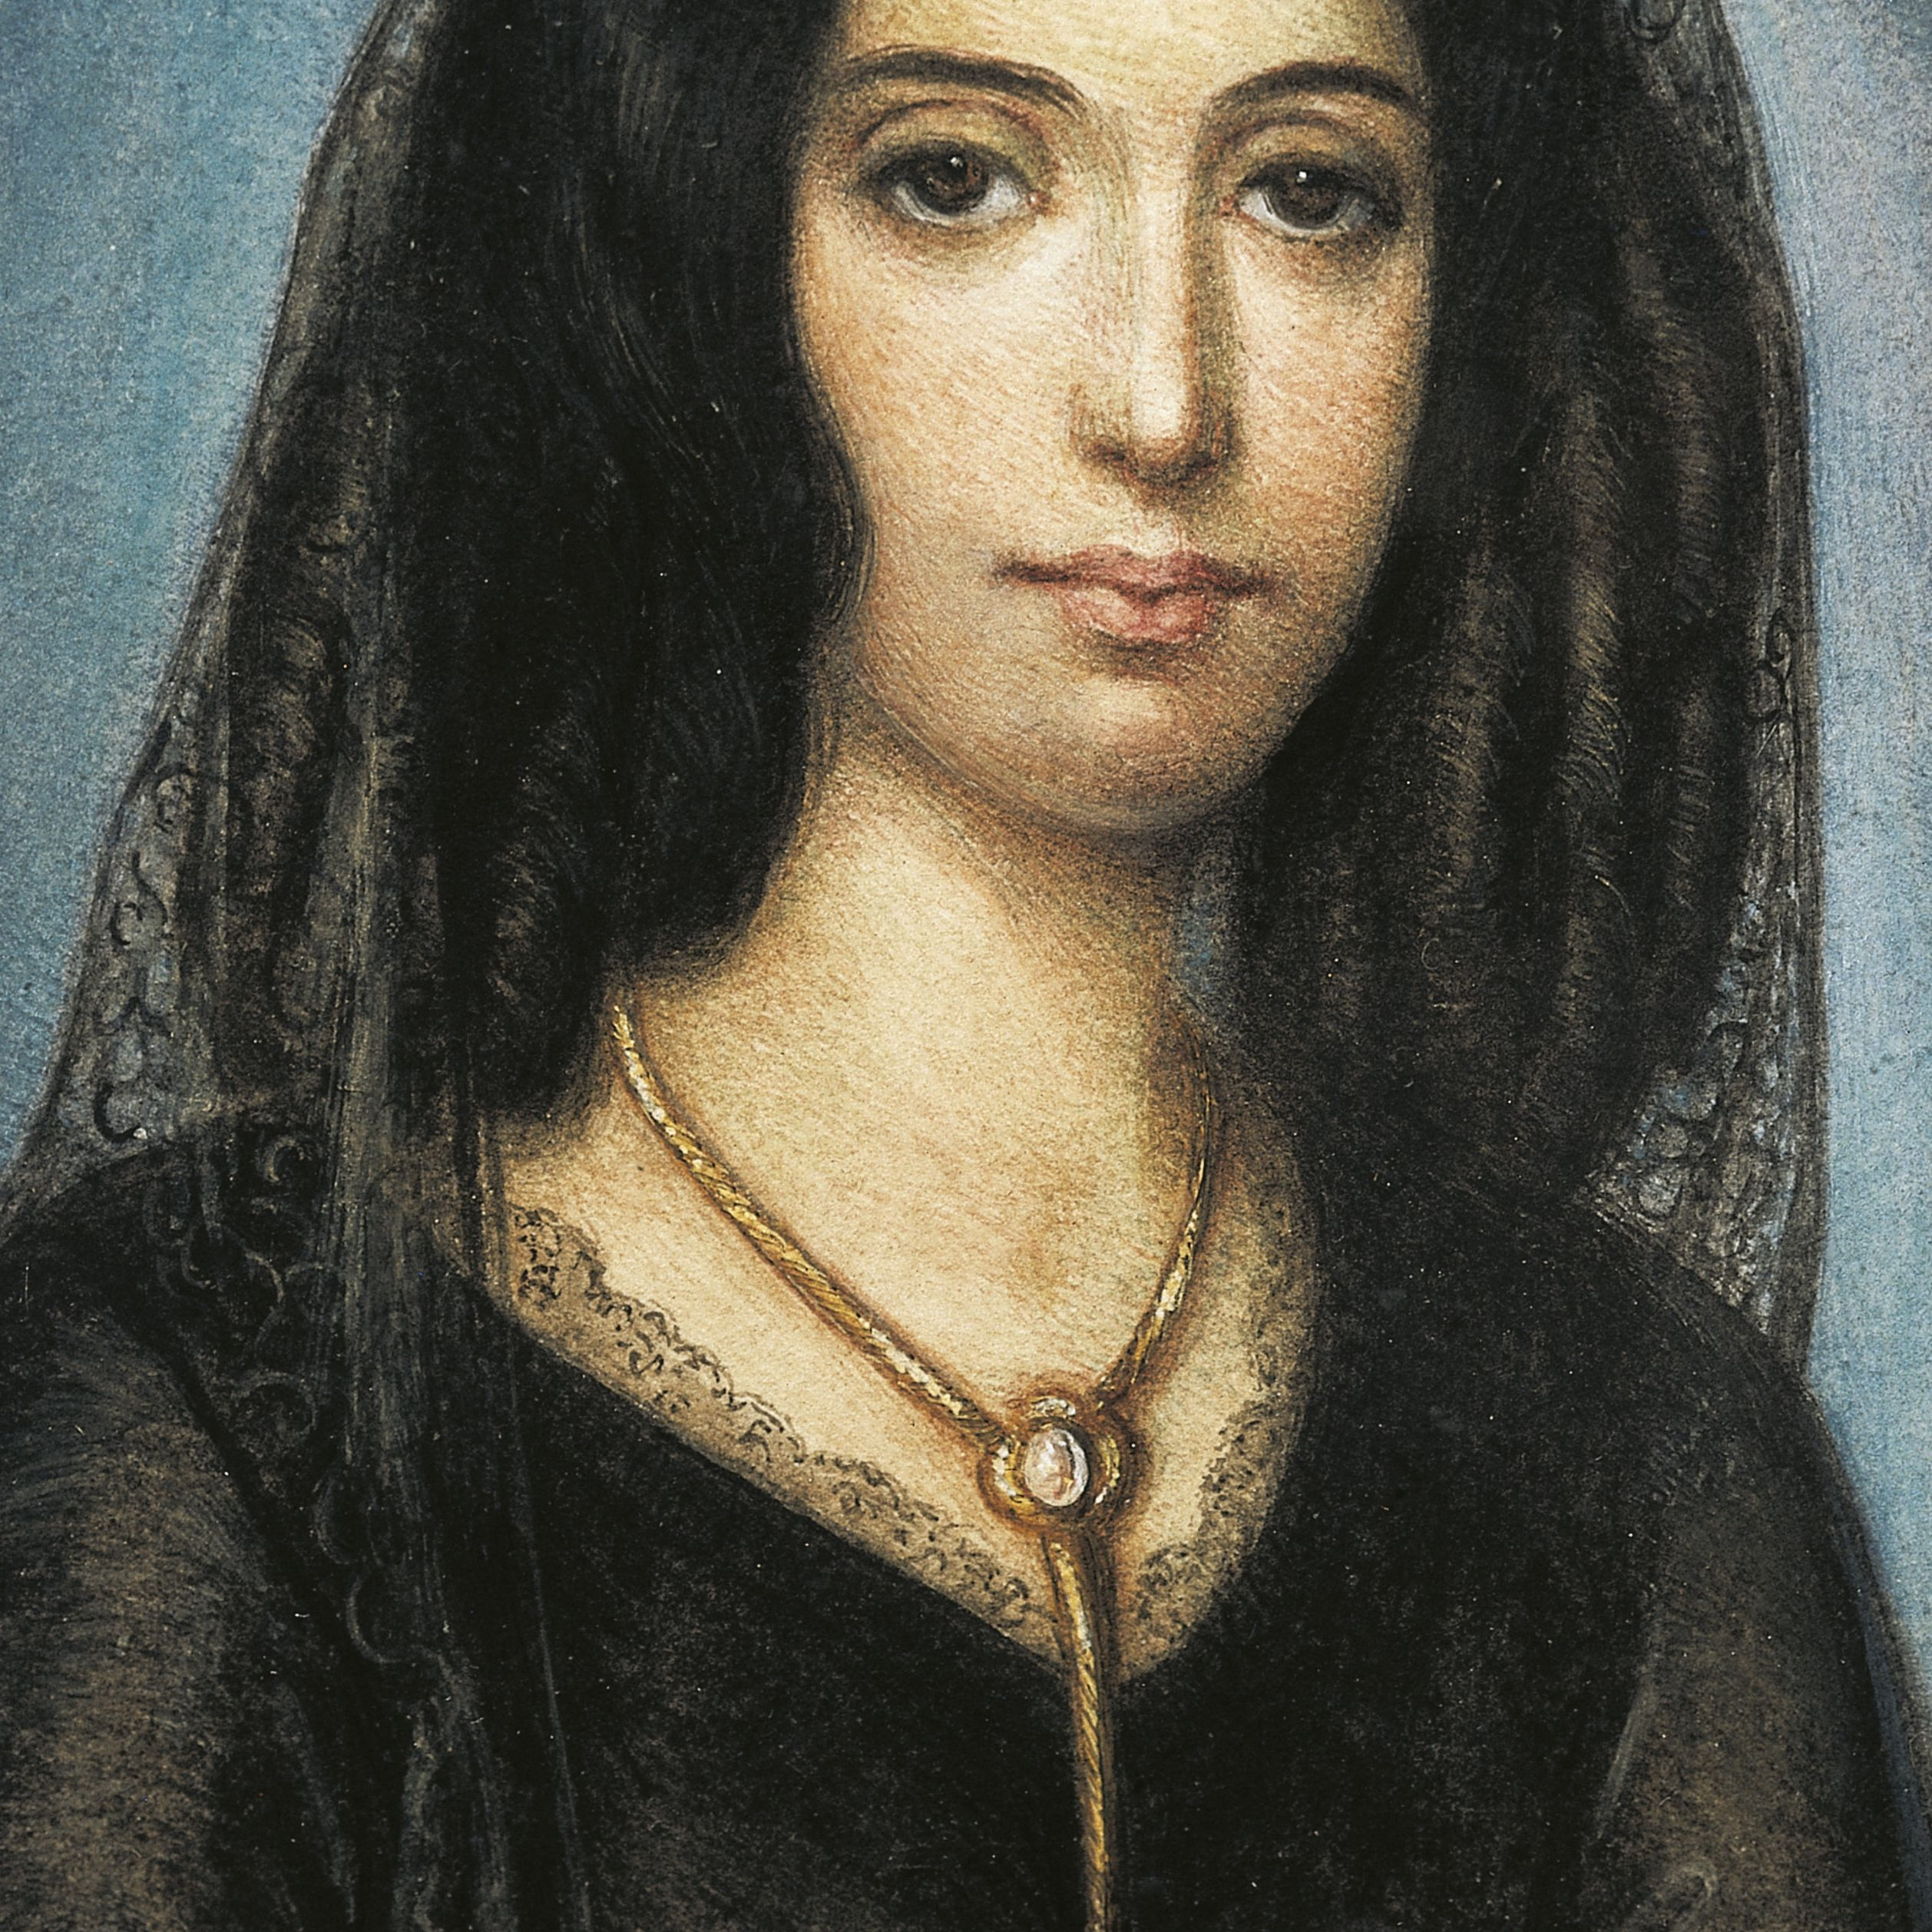 George Sand: Controversial and Popular Writer